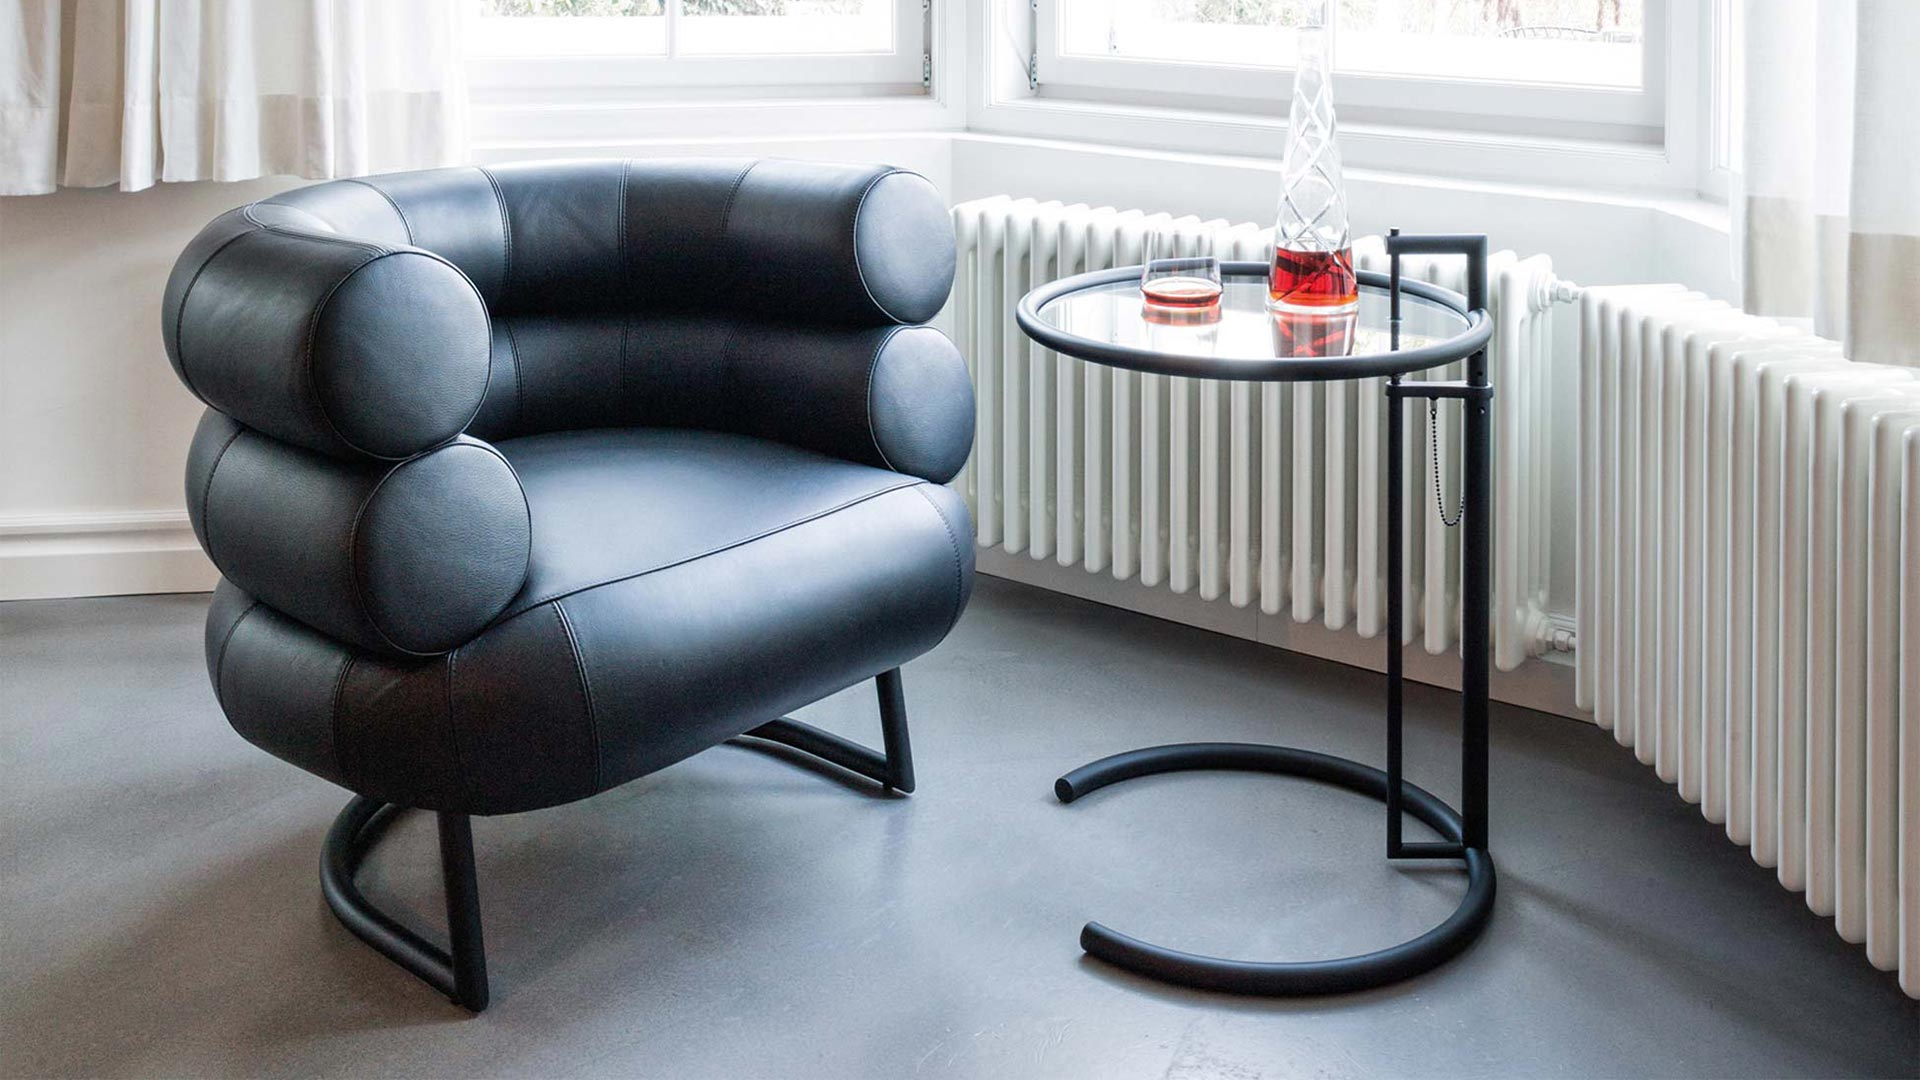 ClassiCon Bibendum Adjustable in Berlin bei steidten+